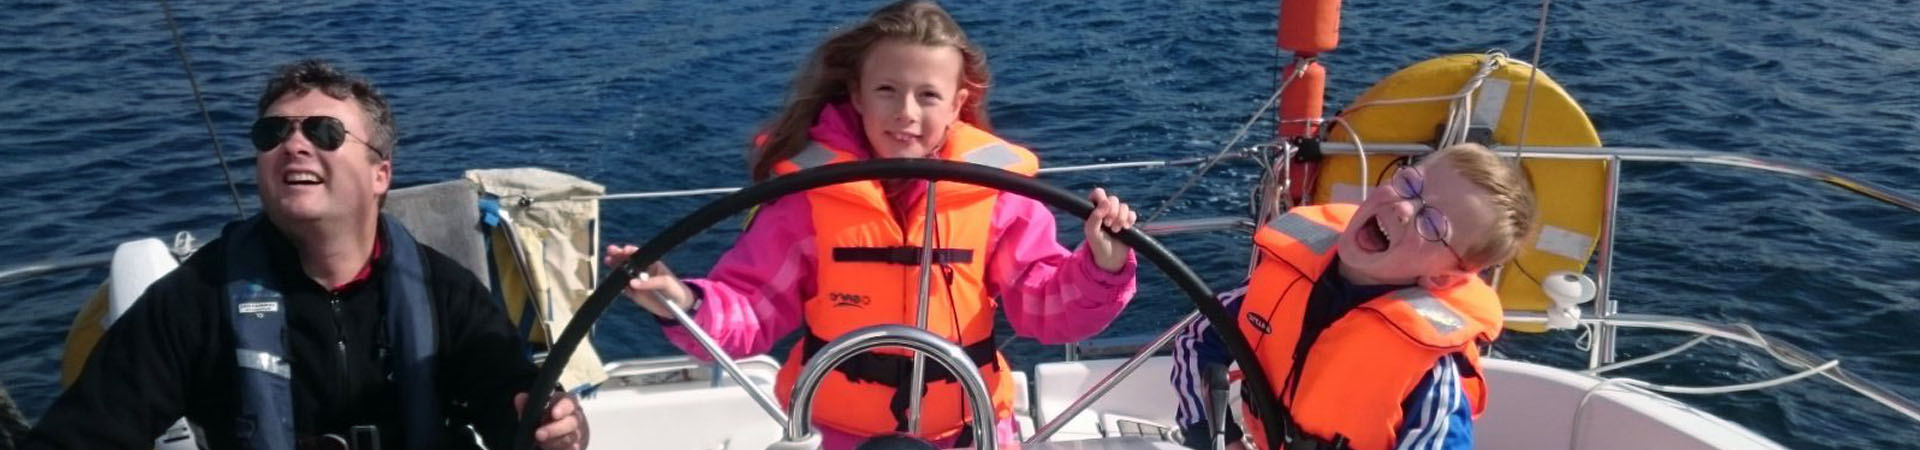 Family Day Activity Cork Sailing Sovereign Sailing Kinsale Cork